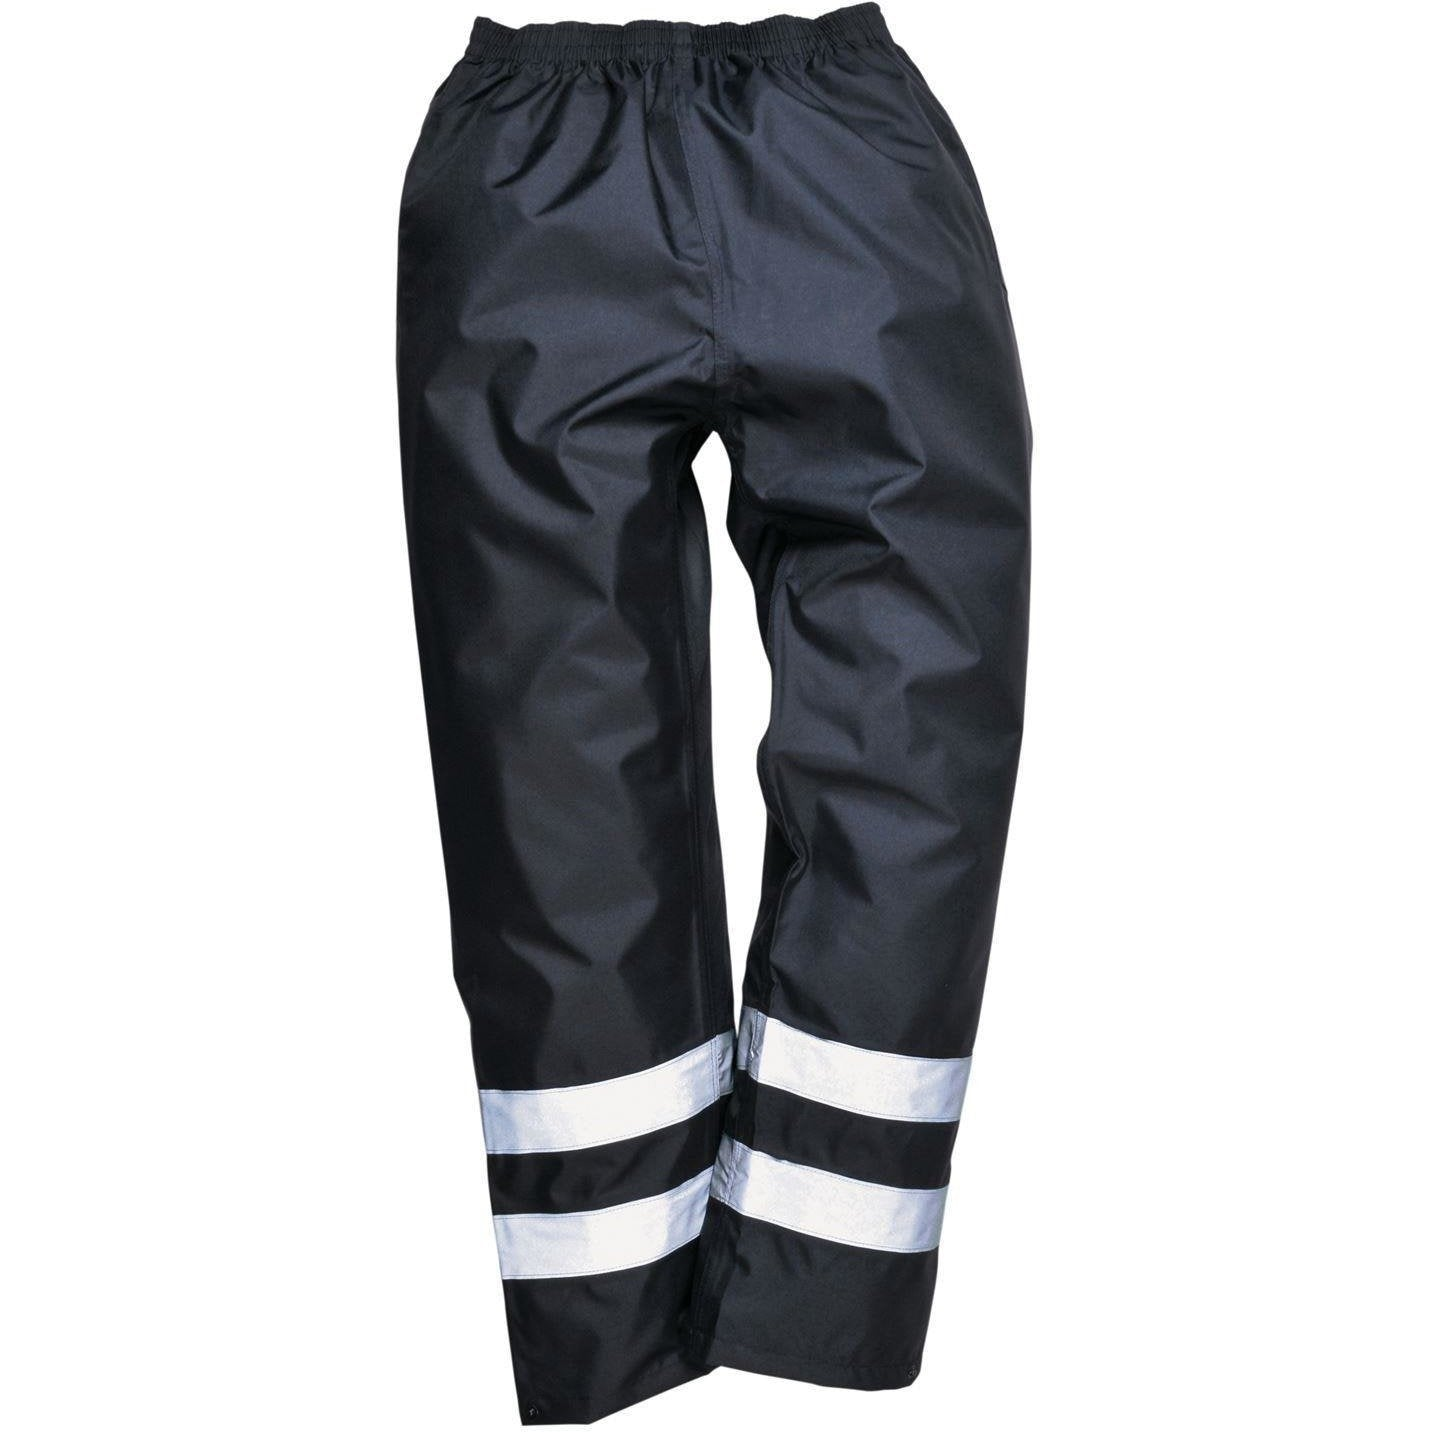 Portwest Iona Lite Lined Trouser S482 - reid outdoors